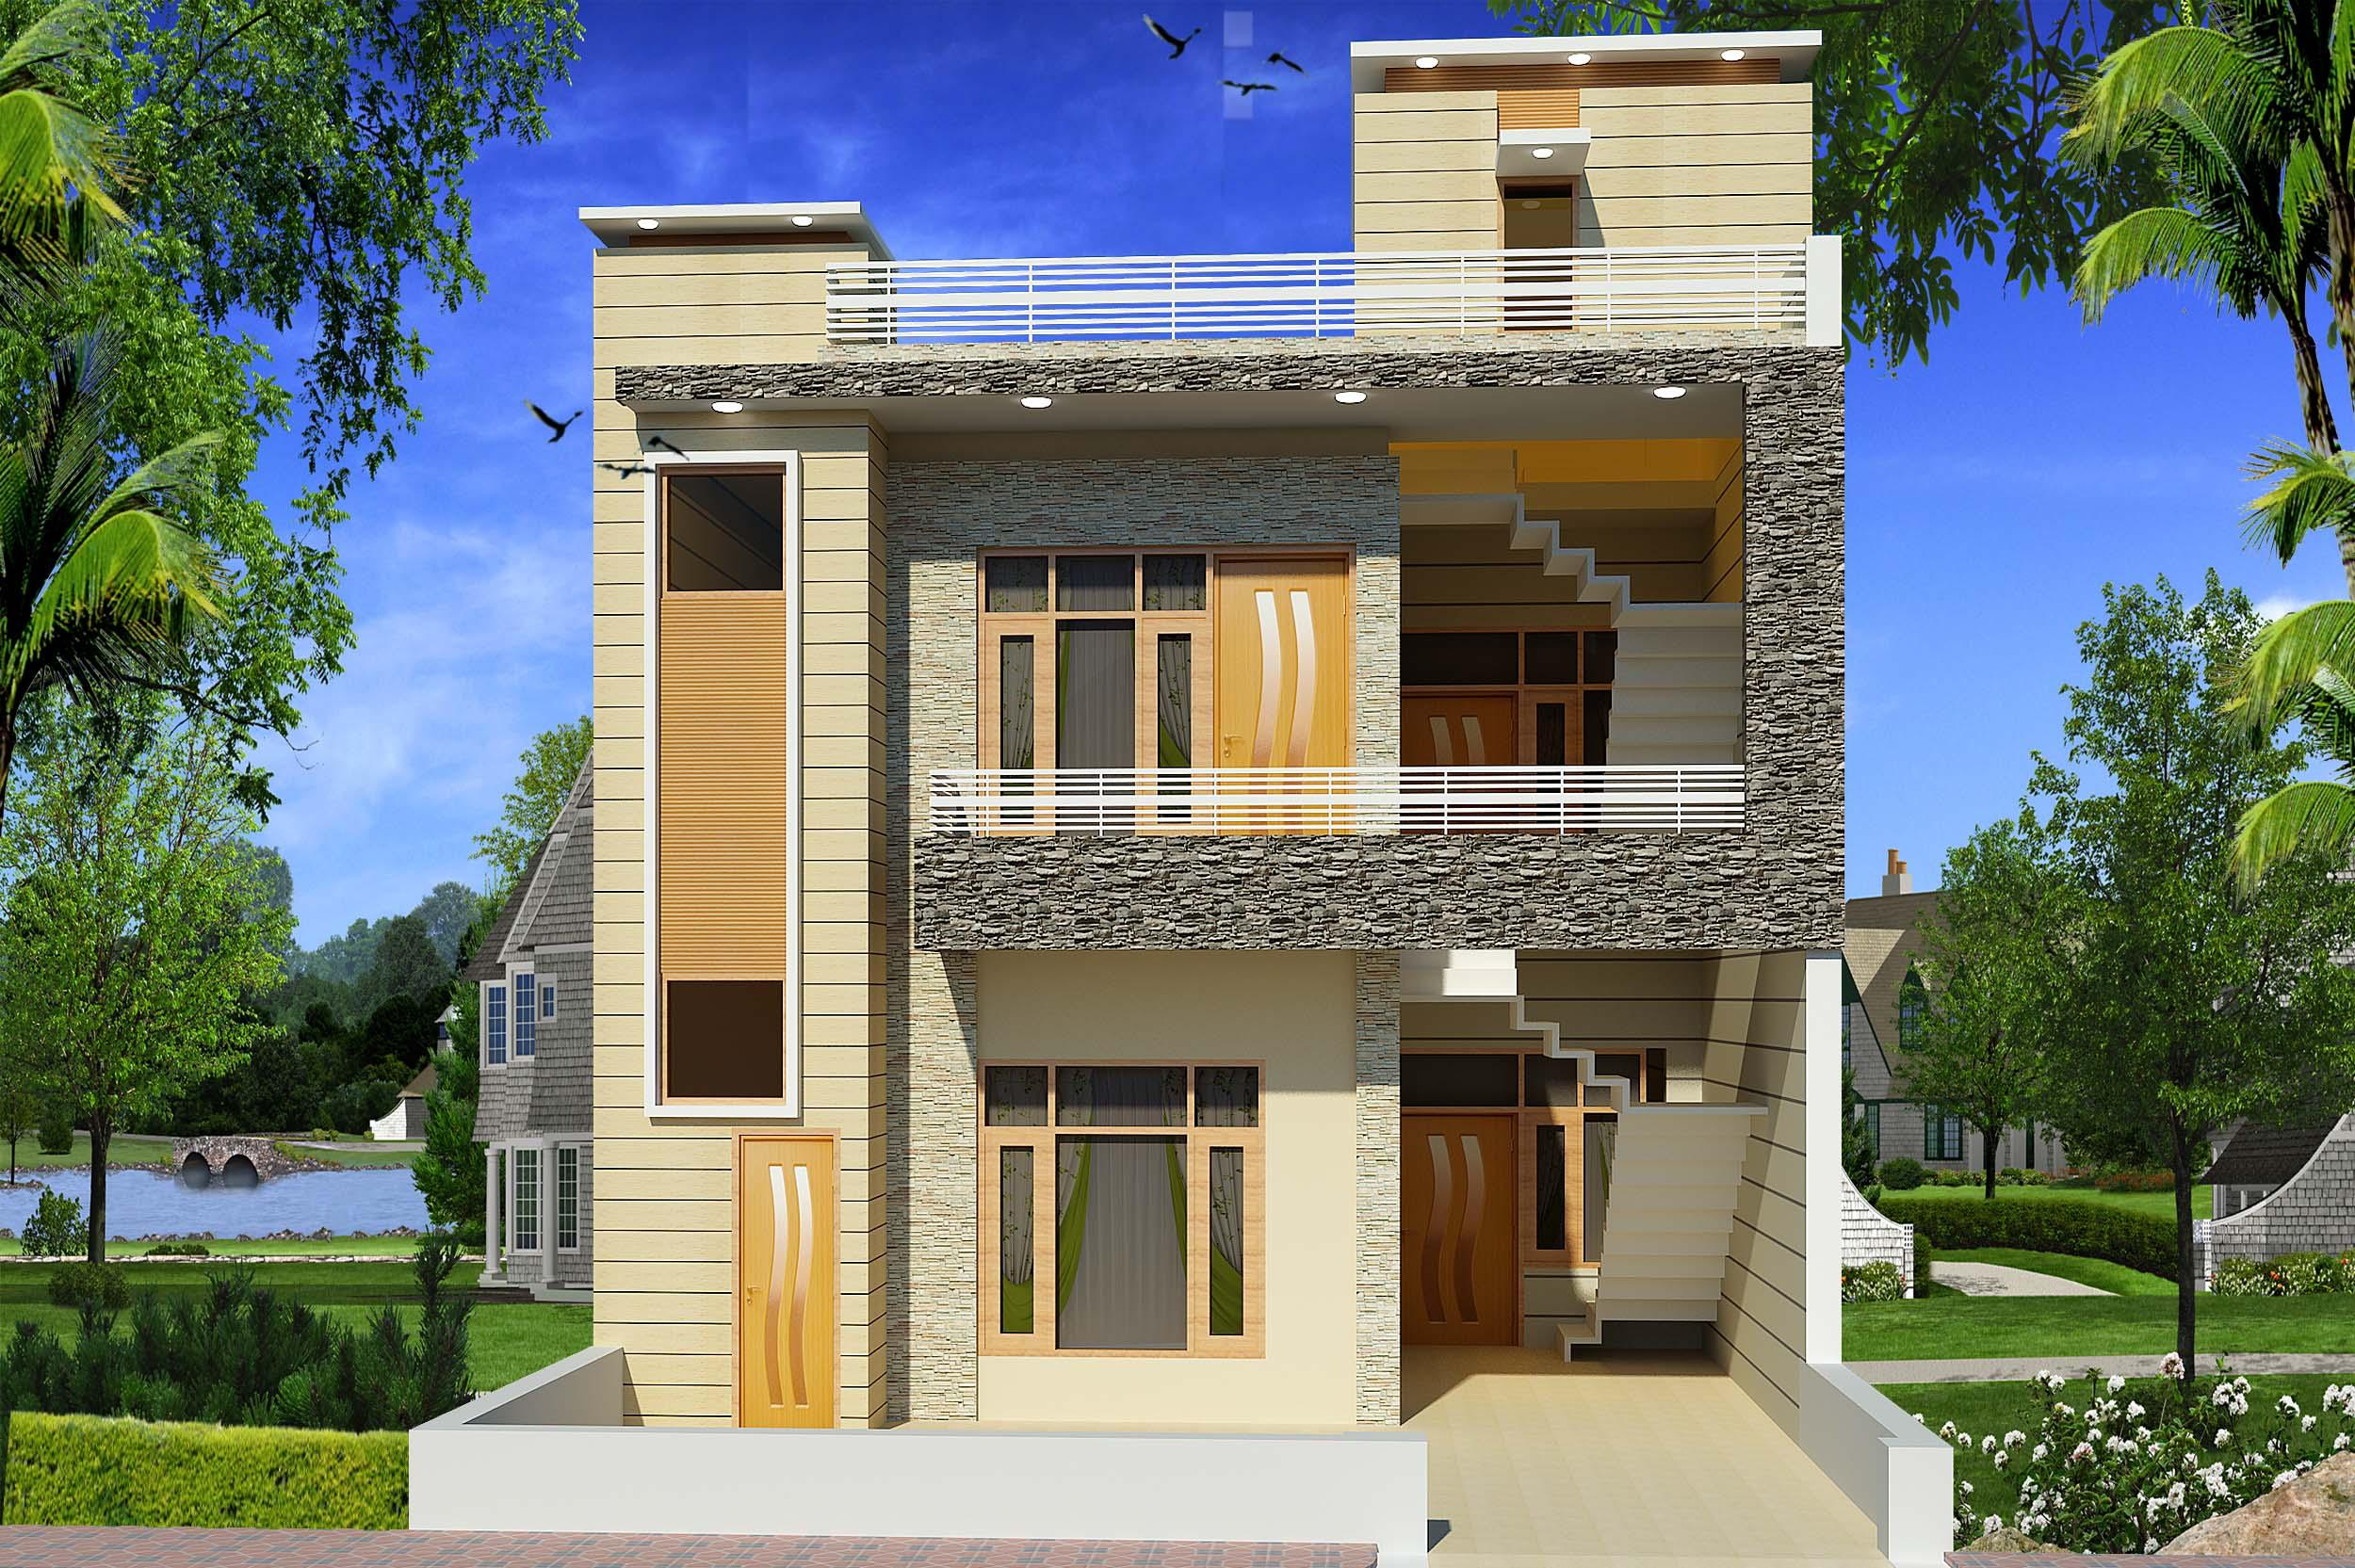 Modern house elevation gharexpert for House design outside view